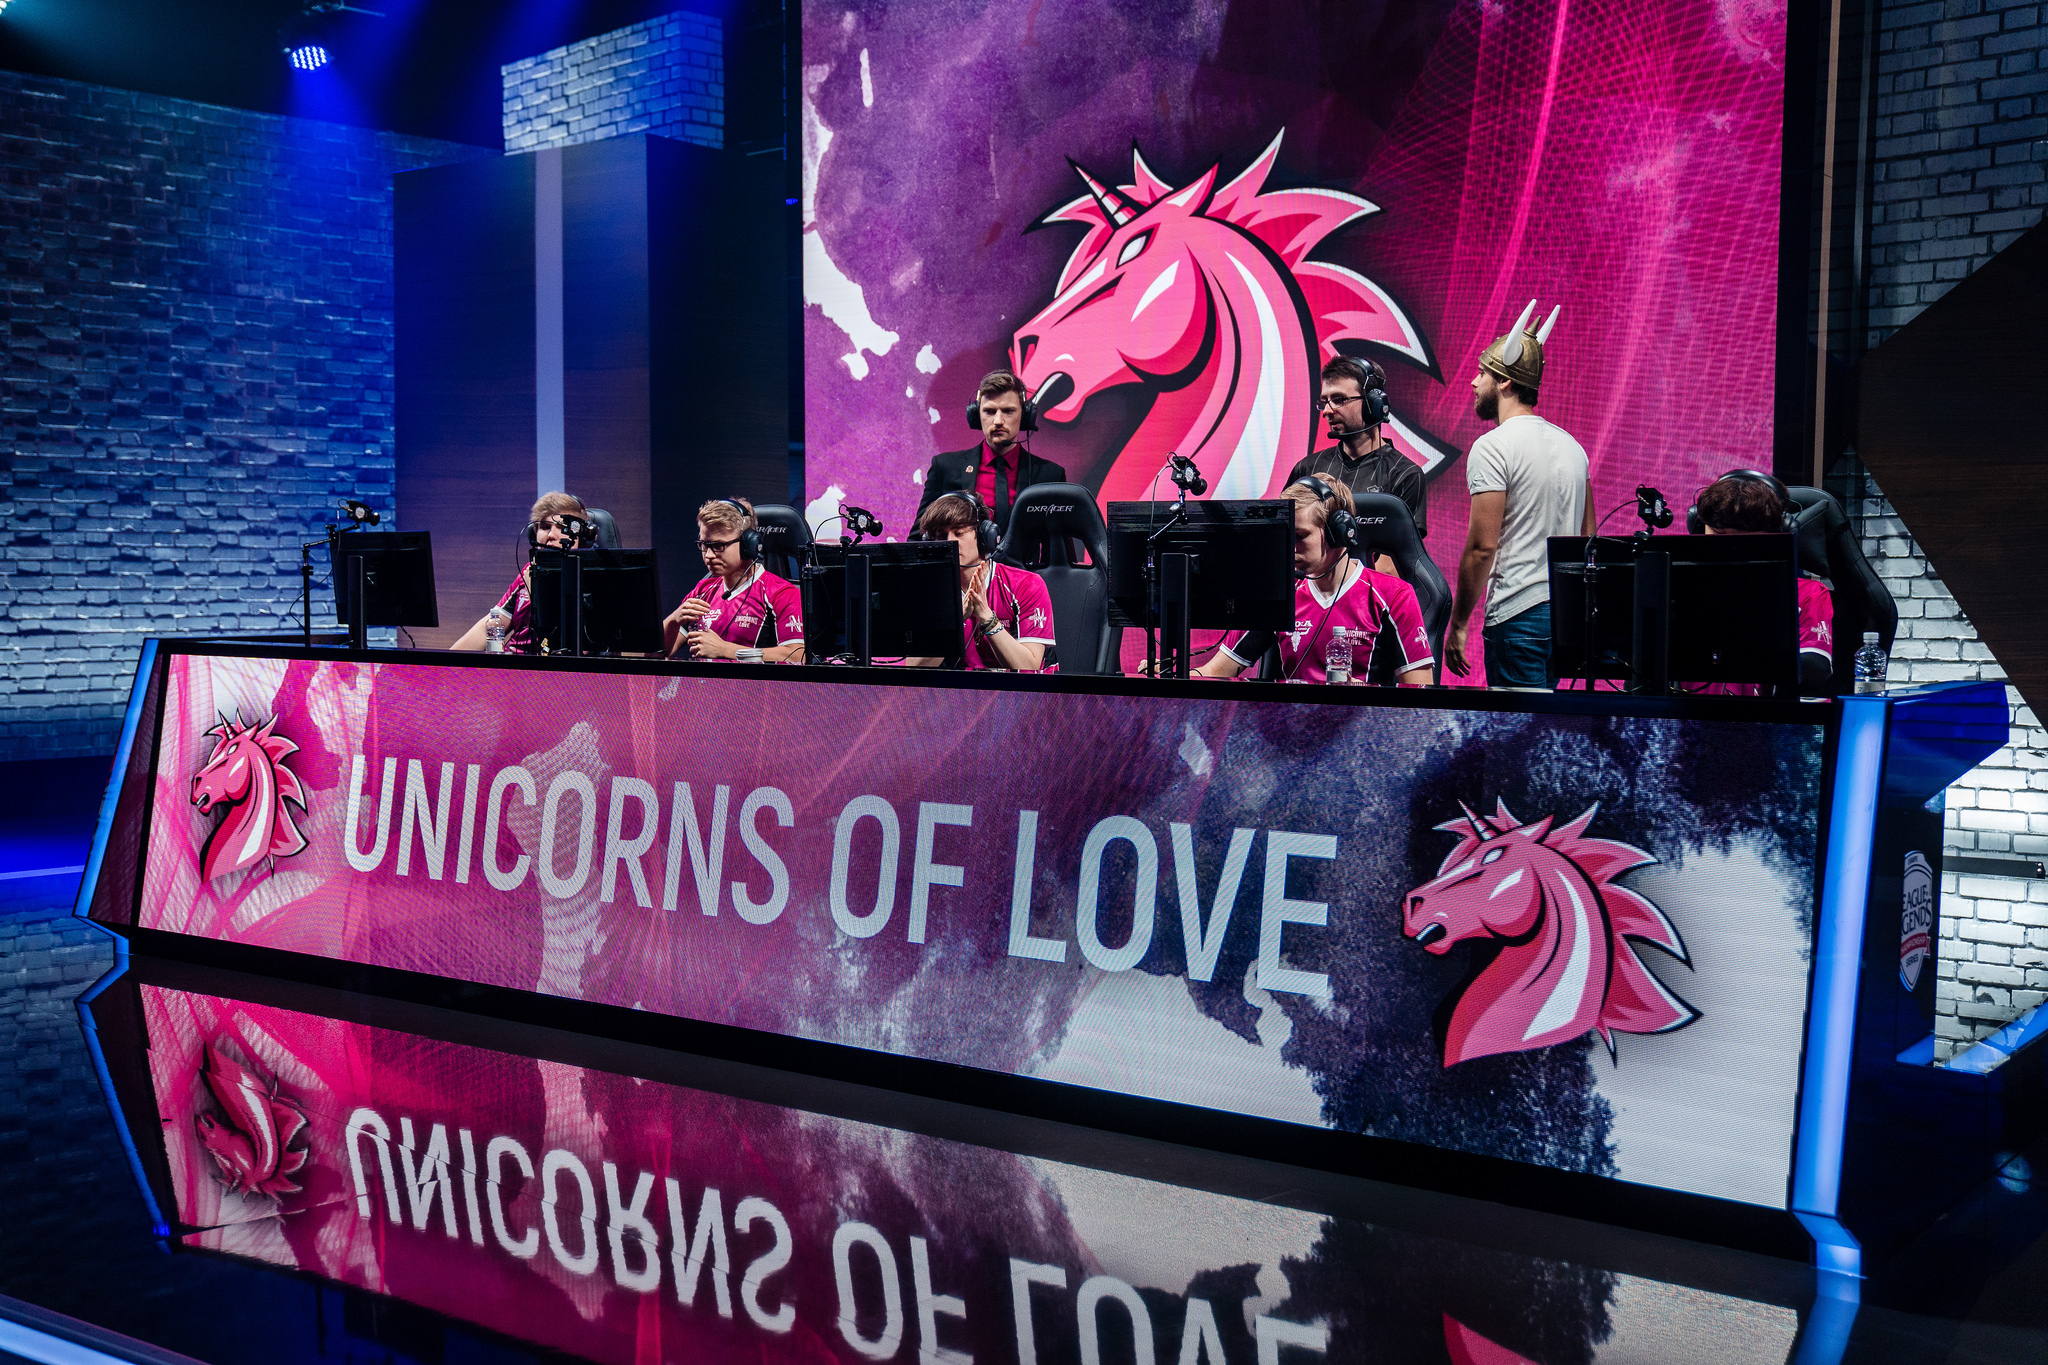 Unicorns of Love confirms it won't be a part of the EU LCS ...